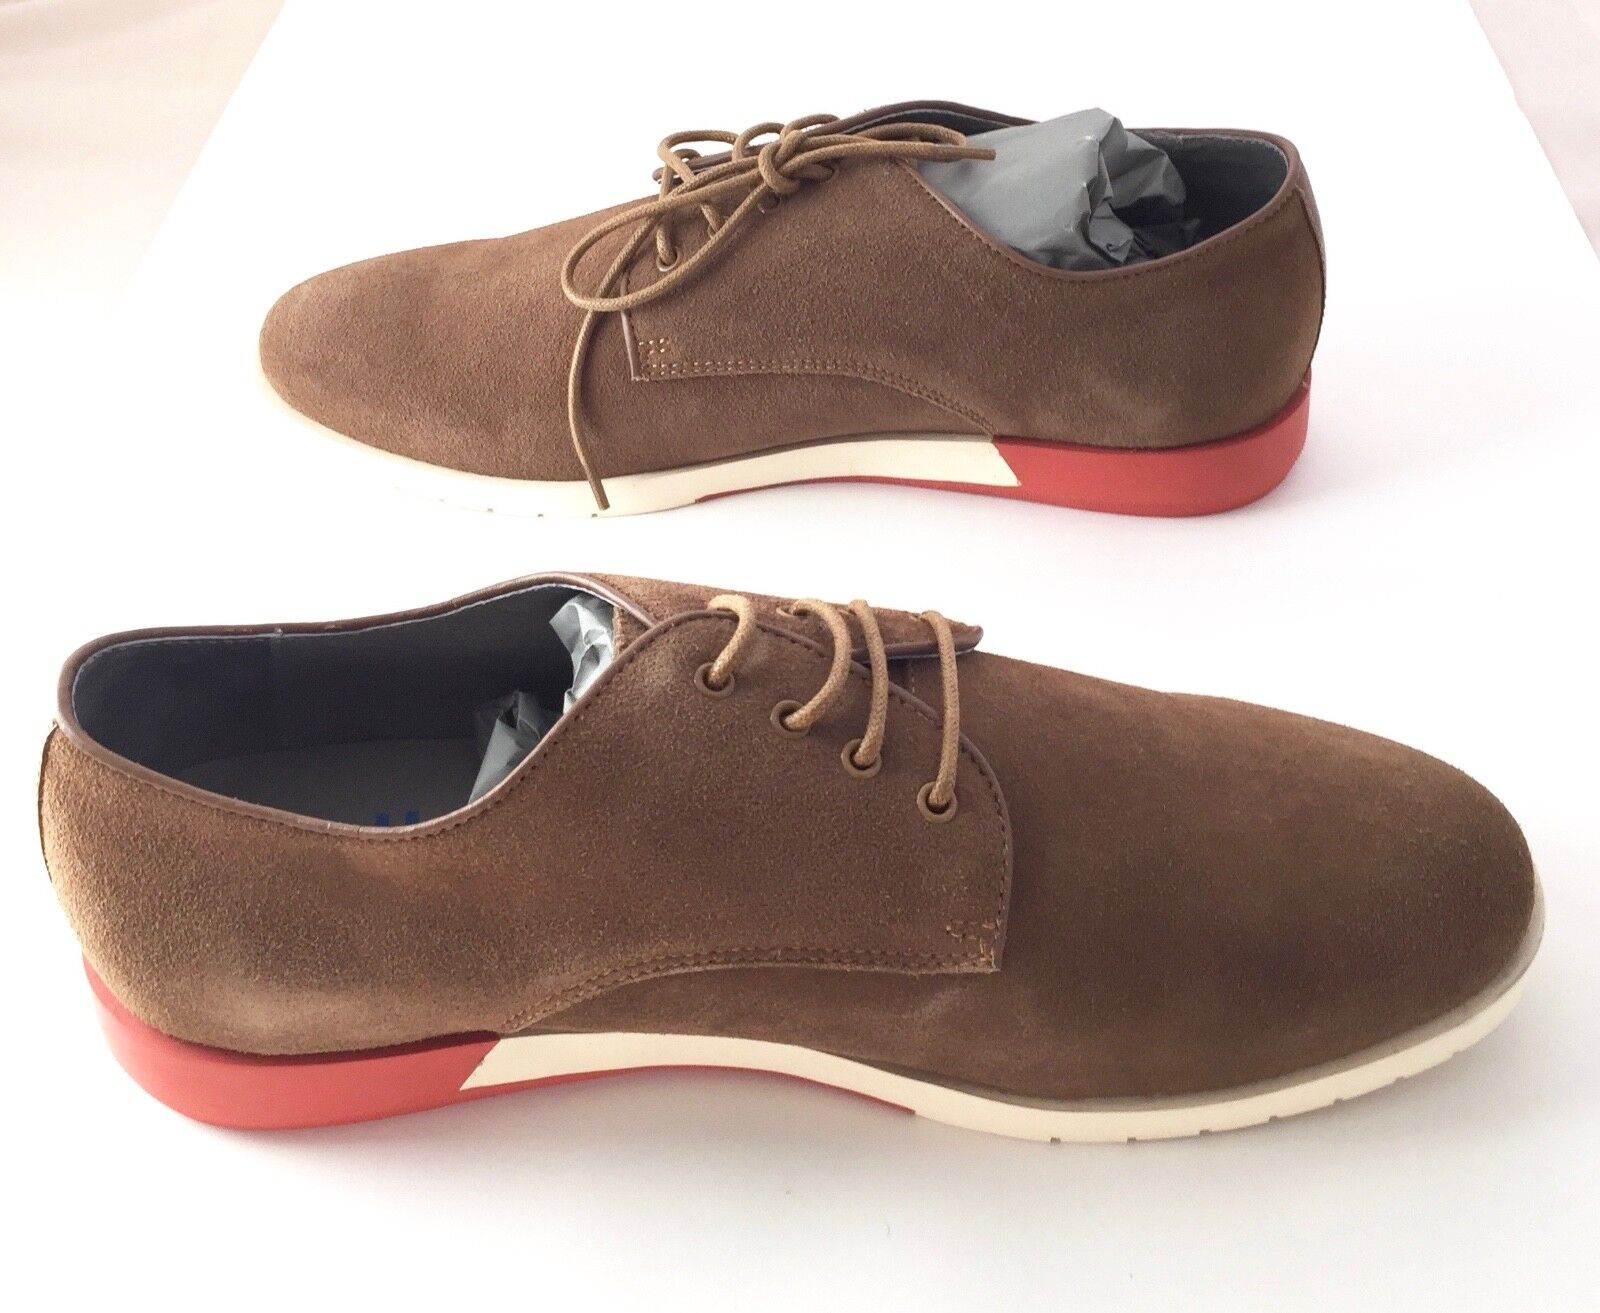 a473c3246f99 ANTHONY ANTHONY ANTHONY MILES (UK) New Mens Tan Suede shoes Size - European  43